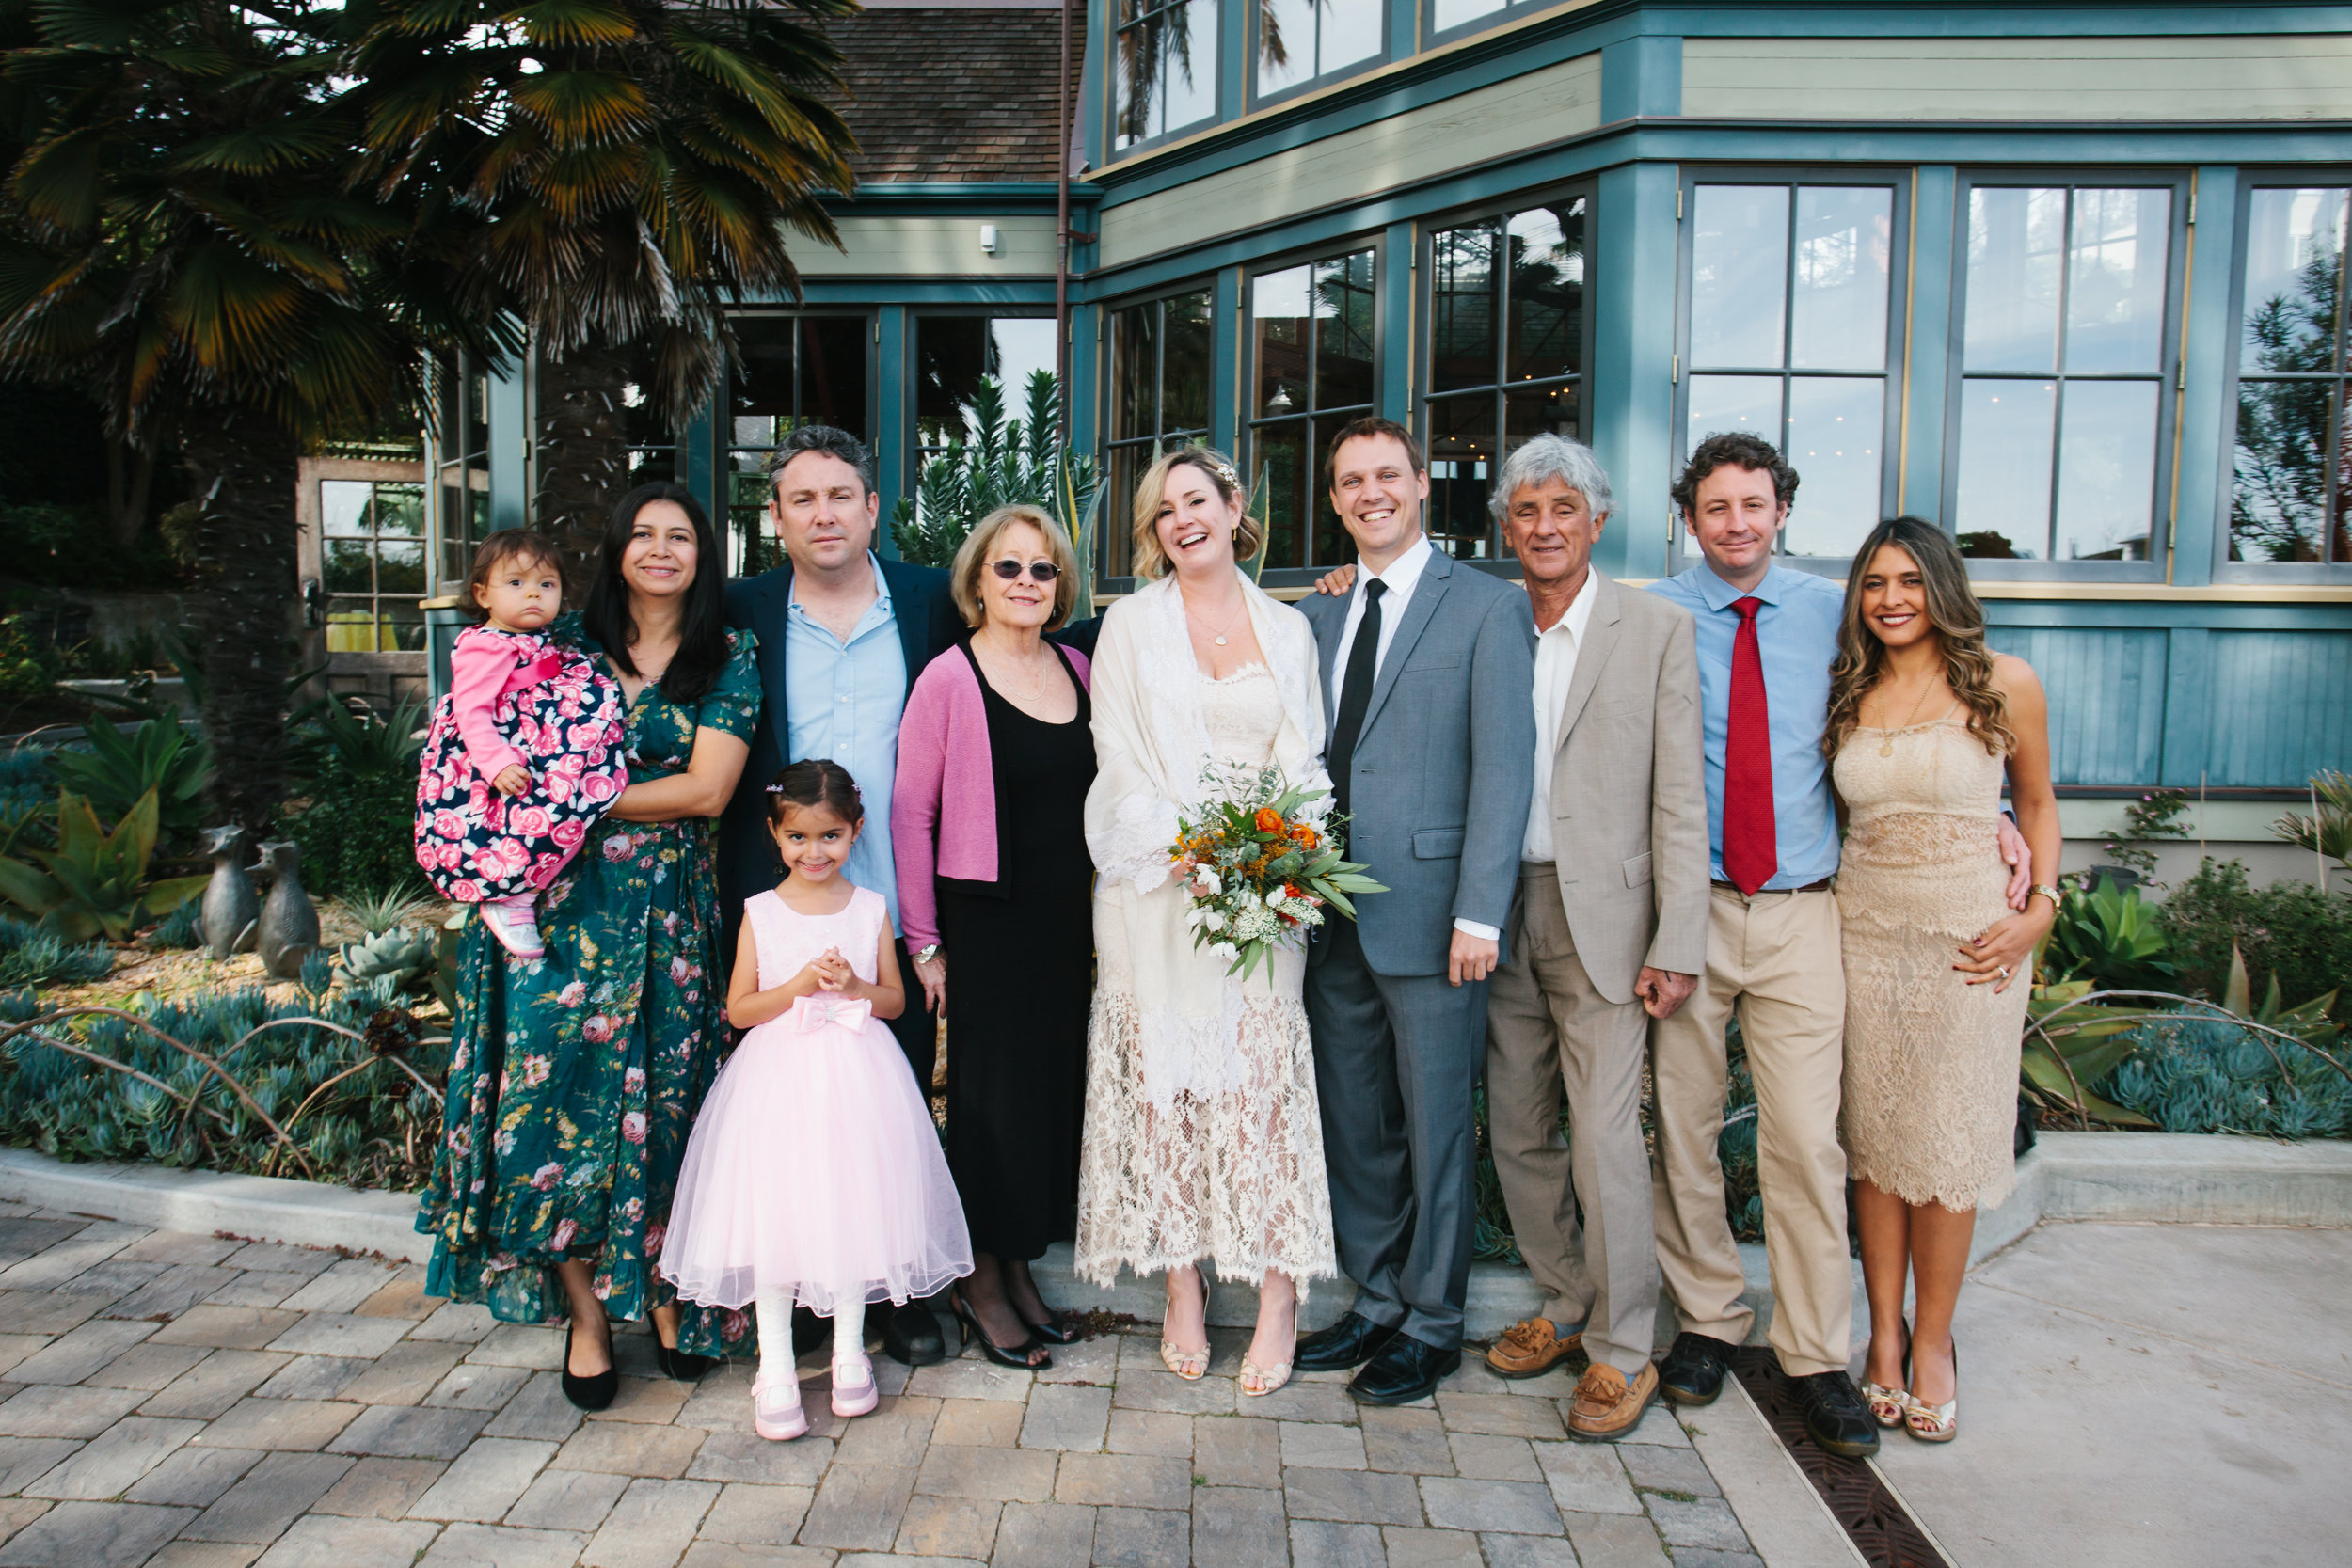 Our family has grown! From left to right: Emma, Claudia, Alicia, Michael, Suzanne, Anna, Pete, Alvaro, Chris and Vivian! Photo: Kathryn Parrott